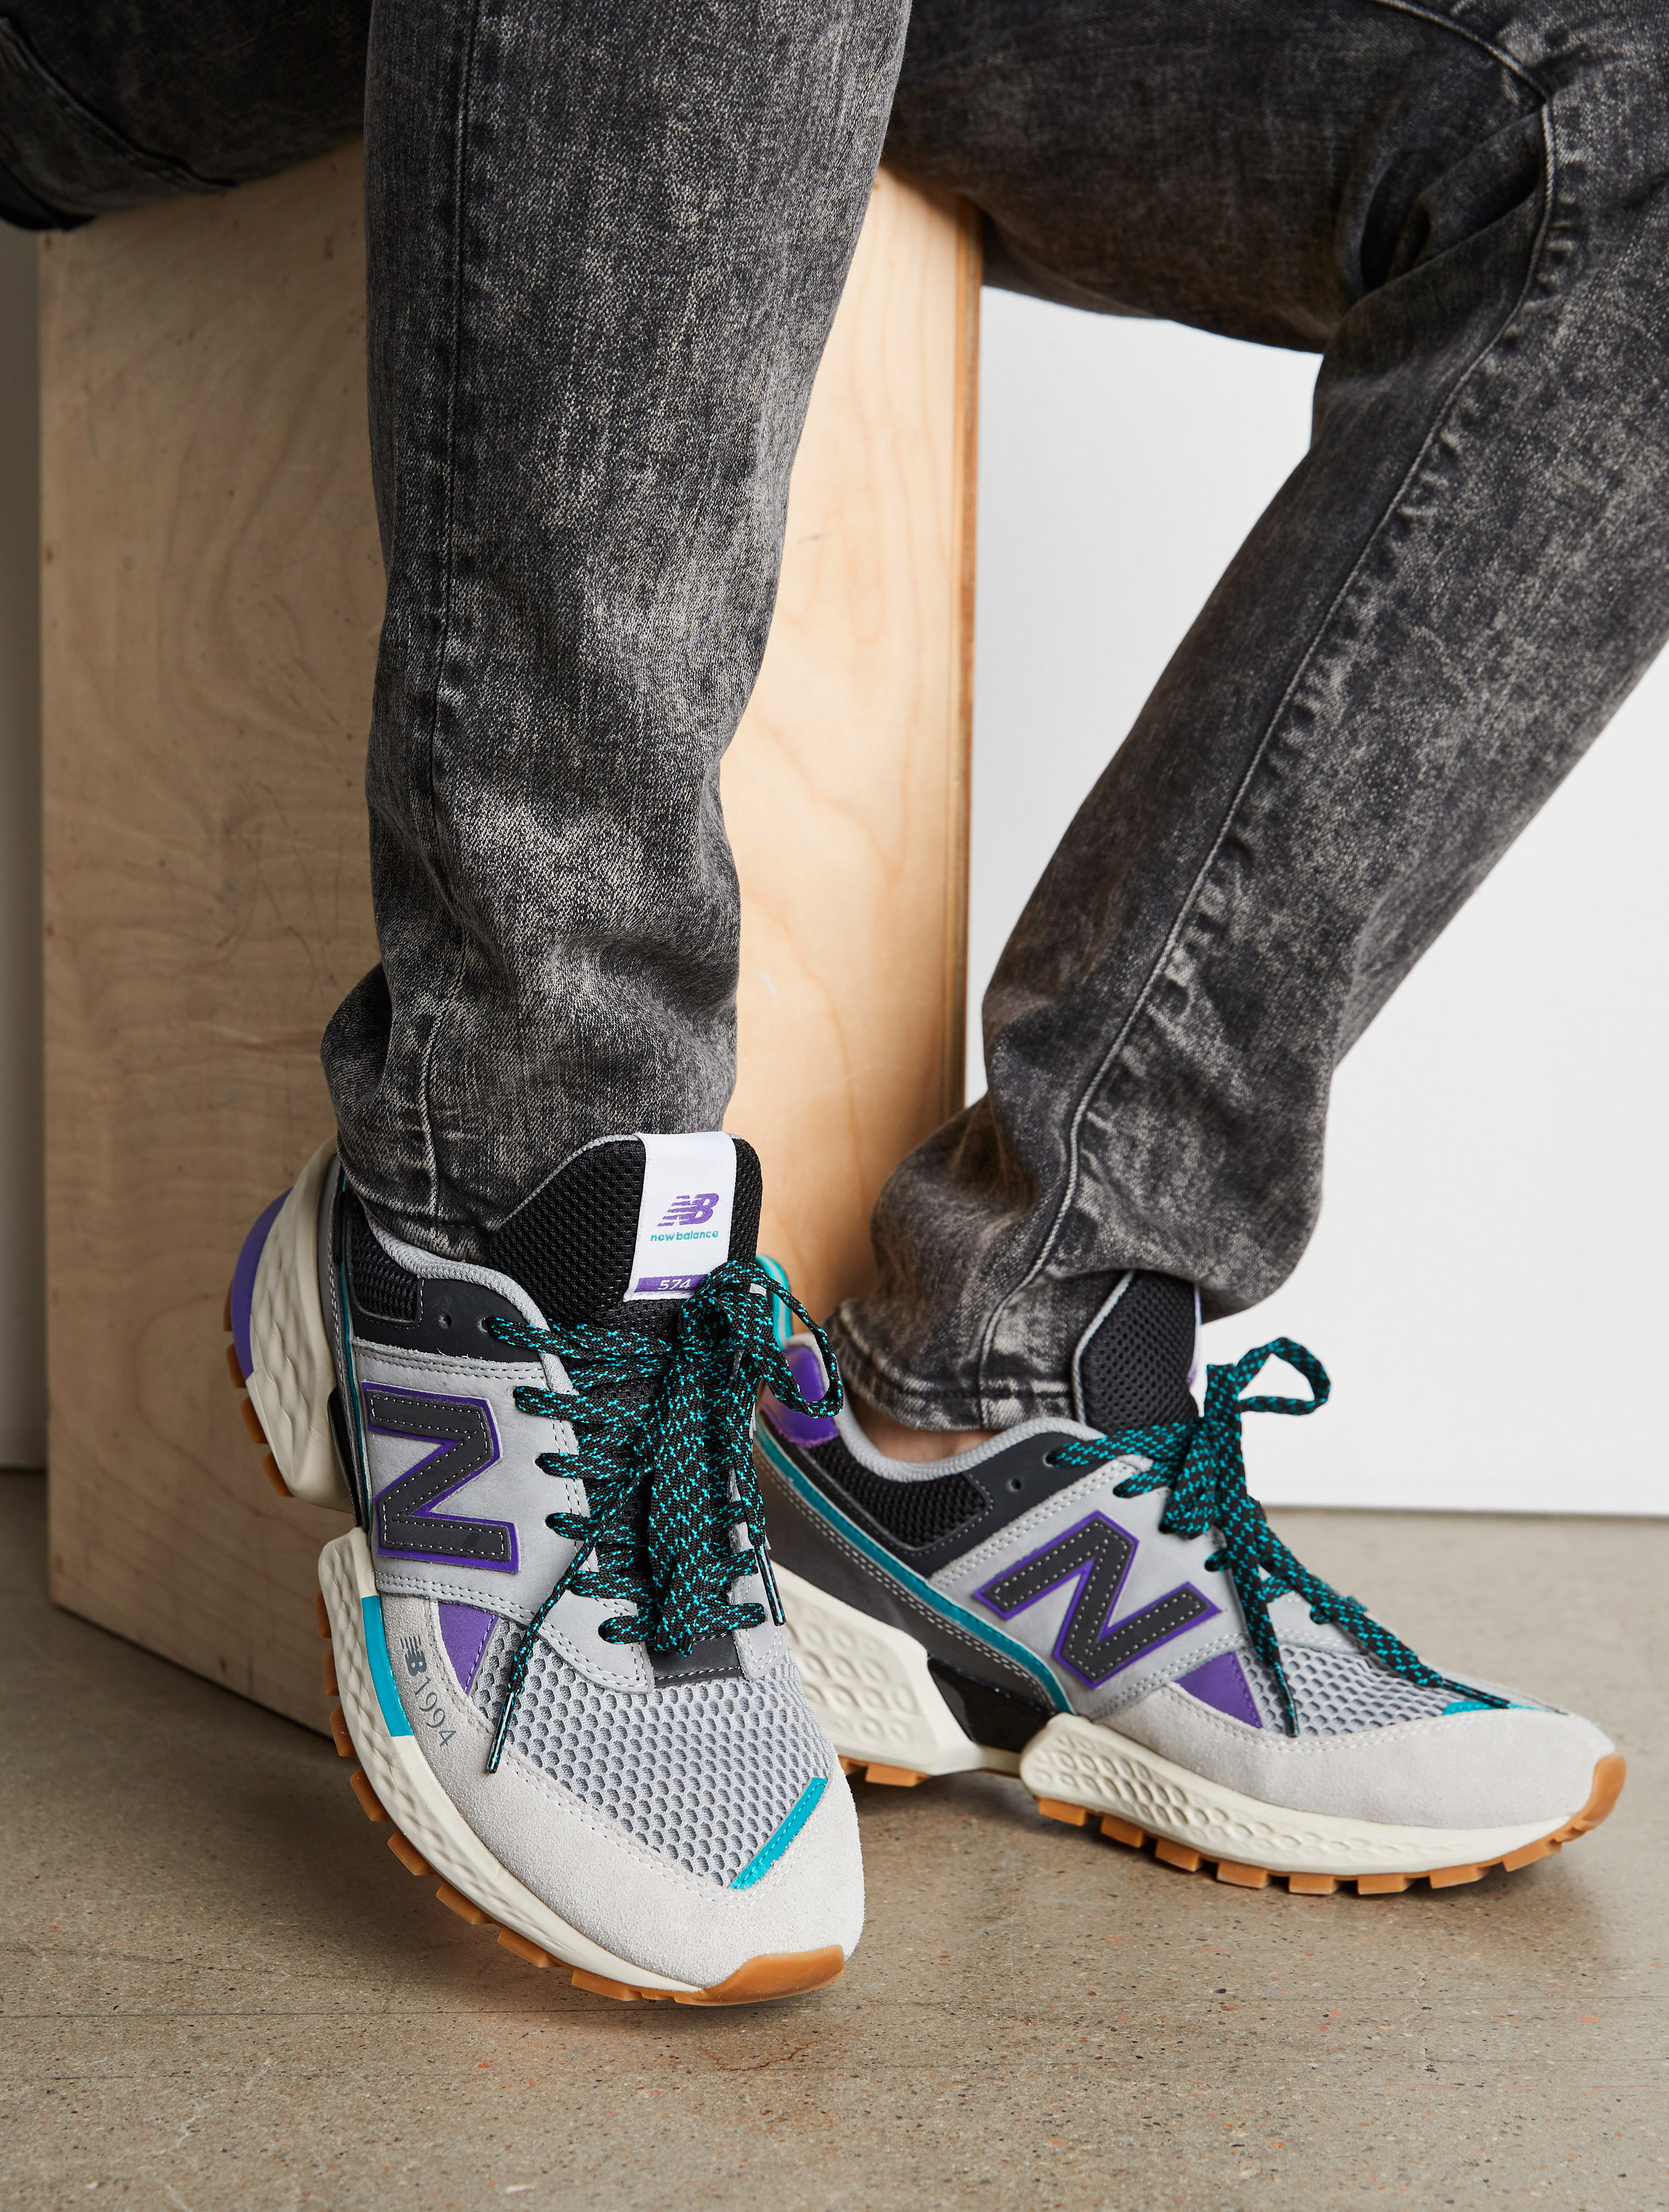 best sneakers with jeans